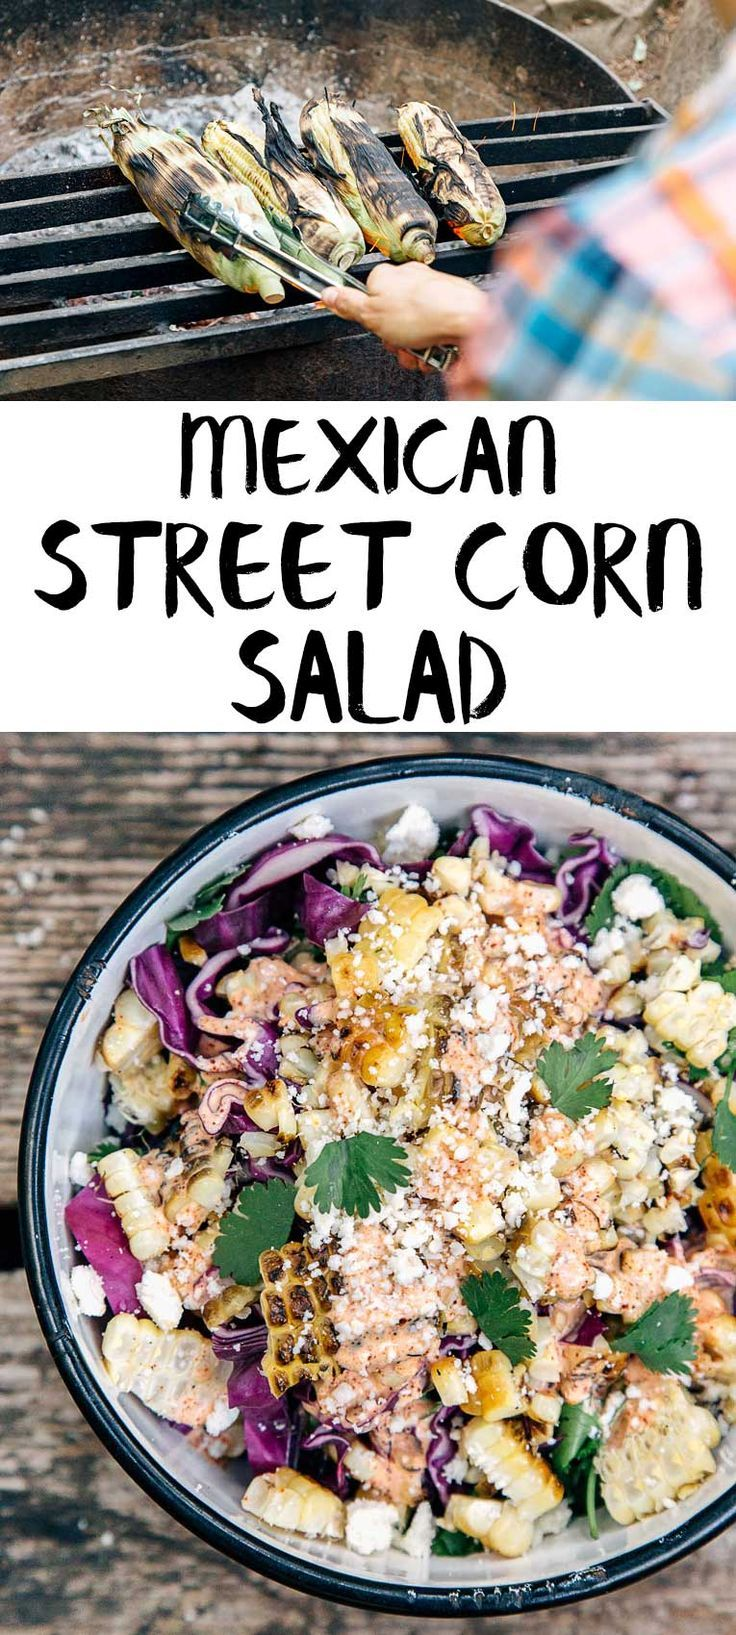 A fun take on Mexican street corn, this grilled esquites recipe (Mexican coleslaw) is a great side to serve with dinner while camping! Grill a few ears of corn, chop some cabbage, and whip up a quick dressing! Camping food   Campfire cooking